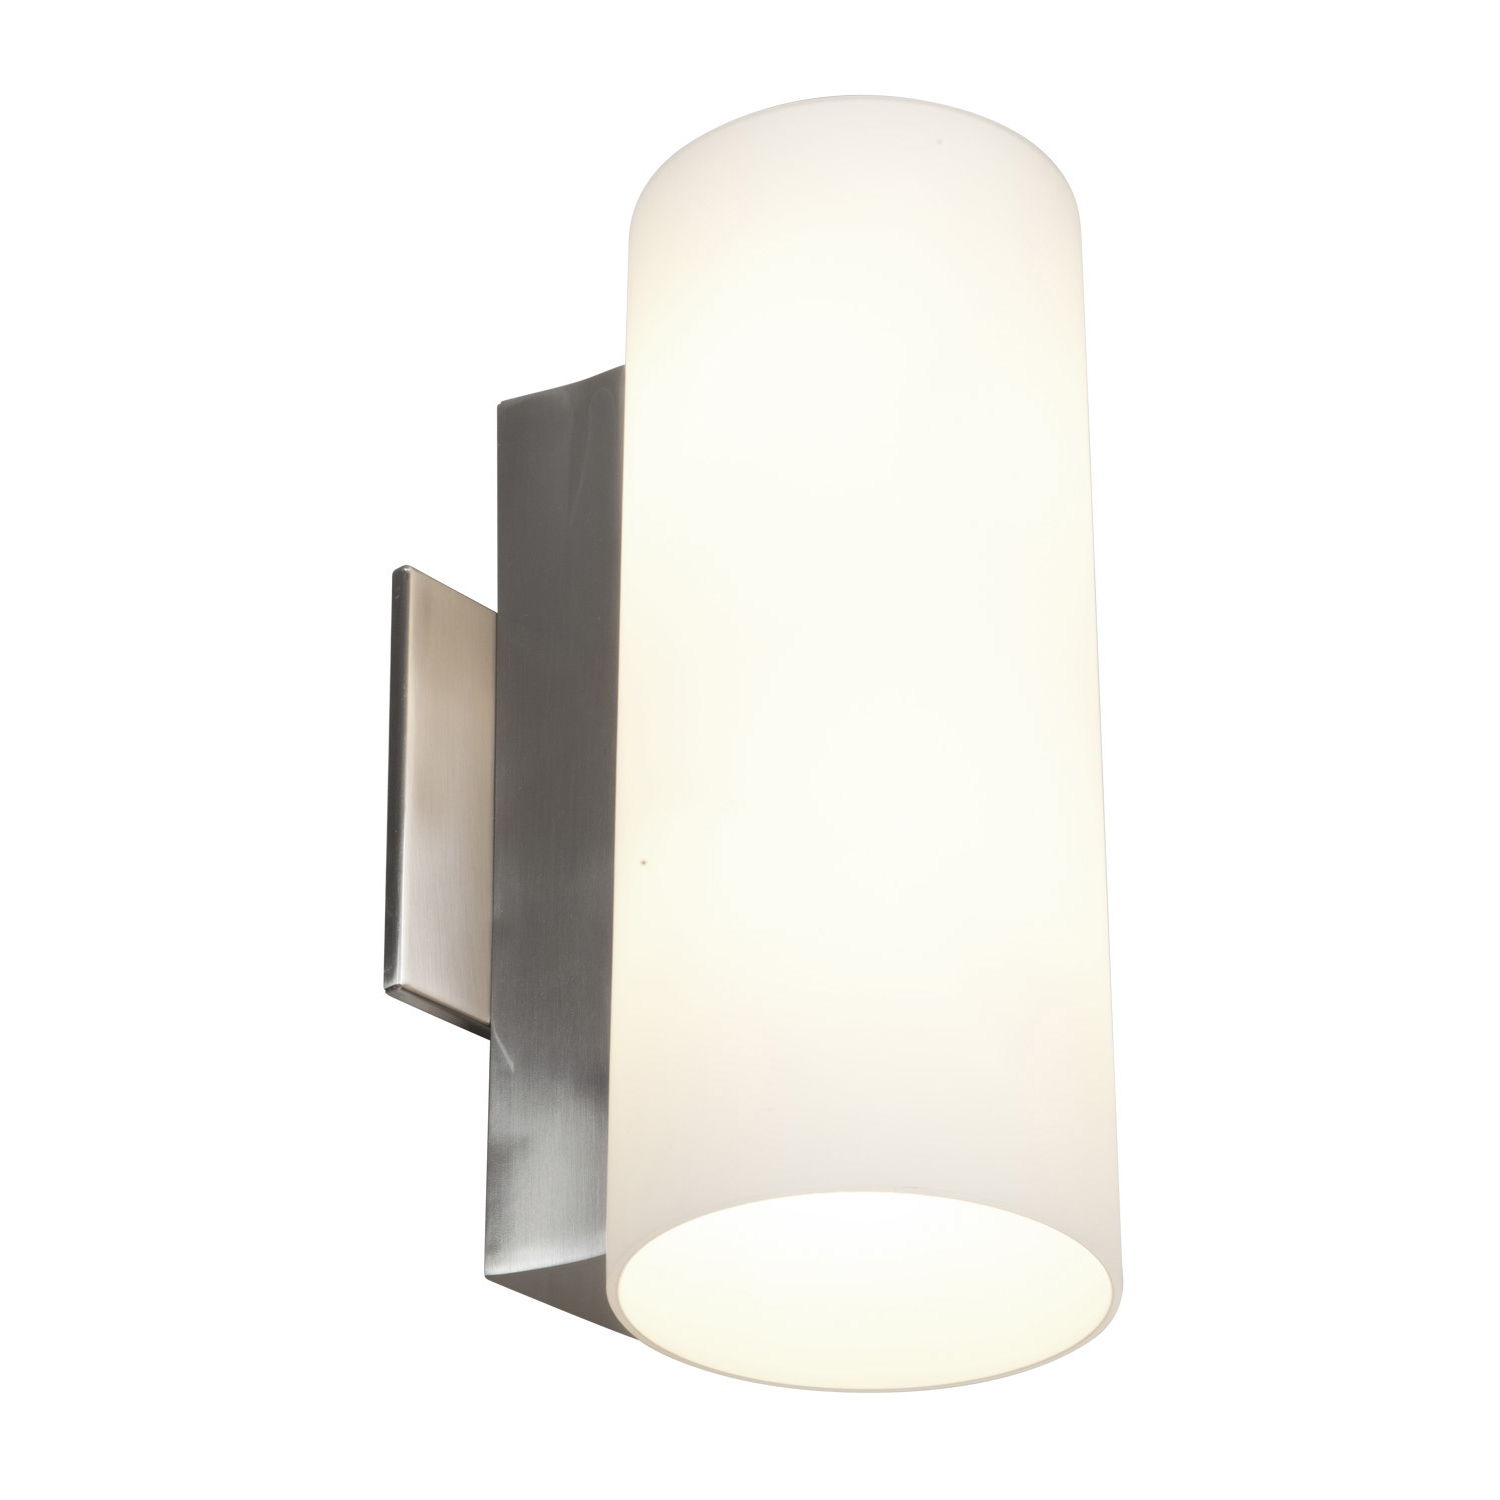 modern-wall-light-fixtures-photo-11